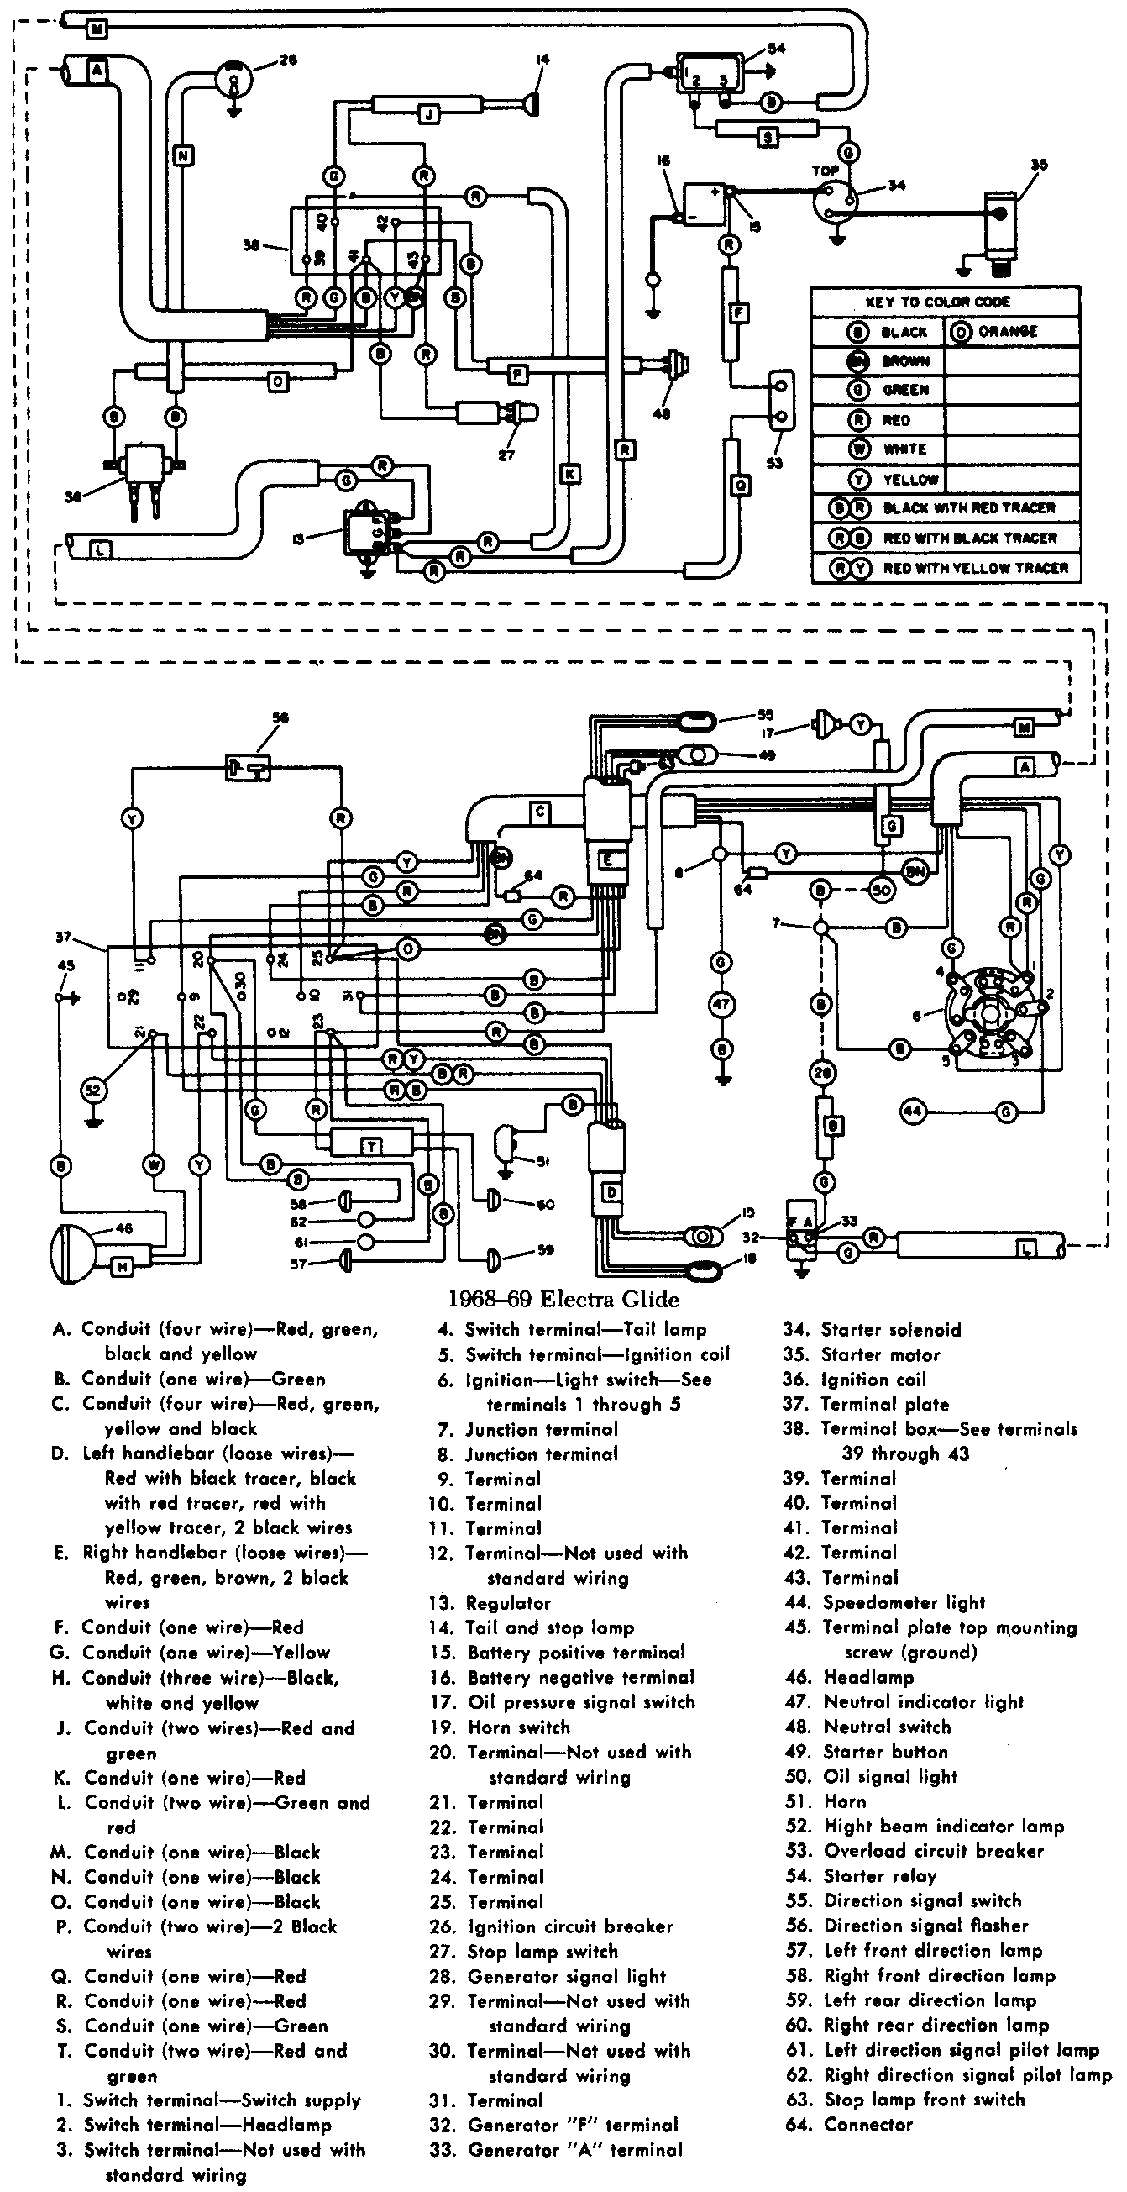 Wiring_2_1968-69_Electra_Glide Harley Davidson Street Glide Wiring Diagram Manual on